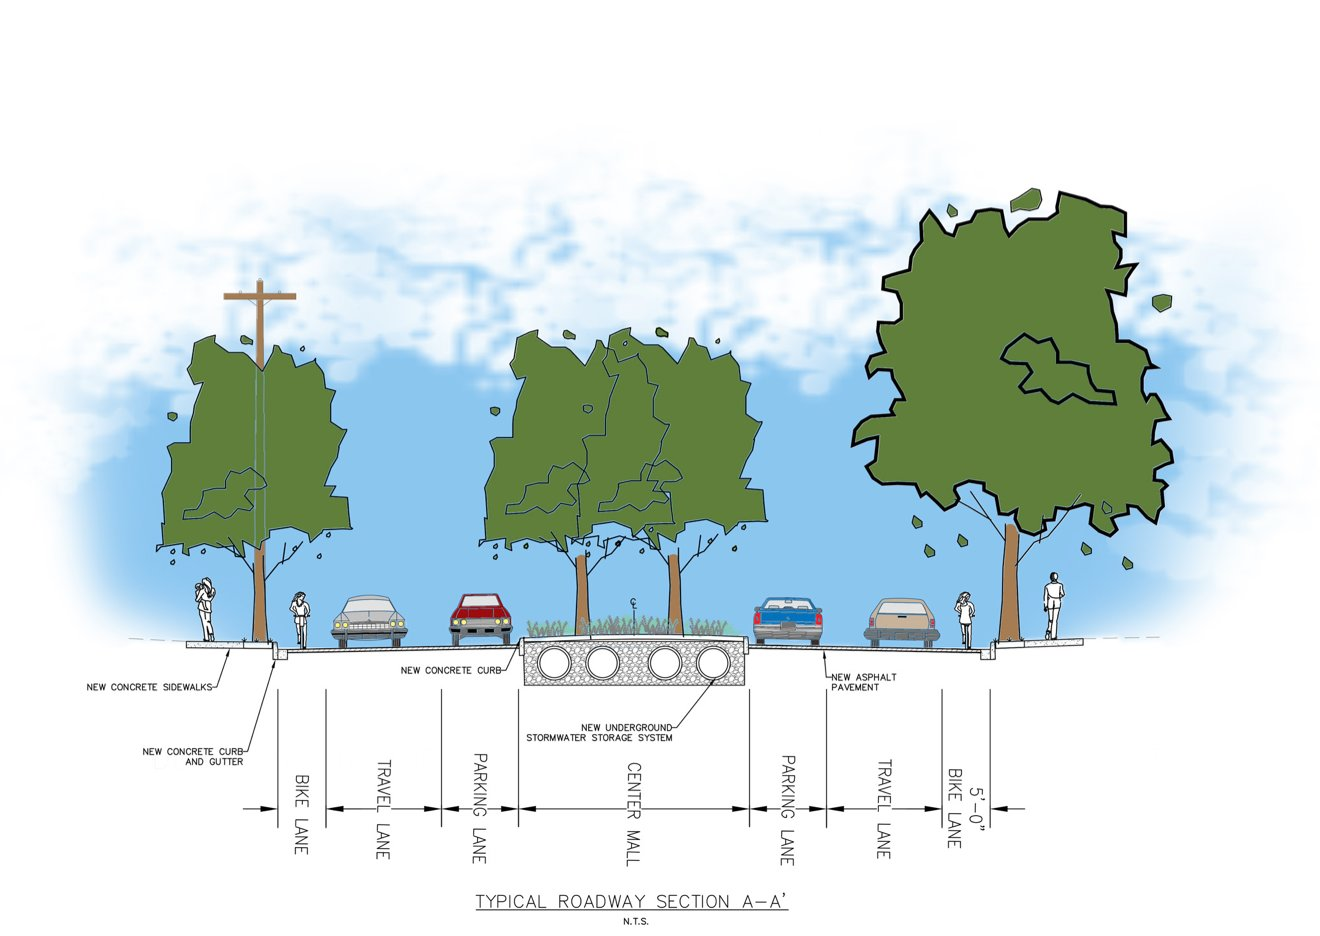 City officials presented renderings of the plan, which would incorporate a drainage system under the grass median in the middle of the street to reduce storm flooding.